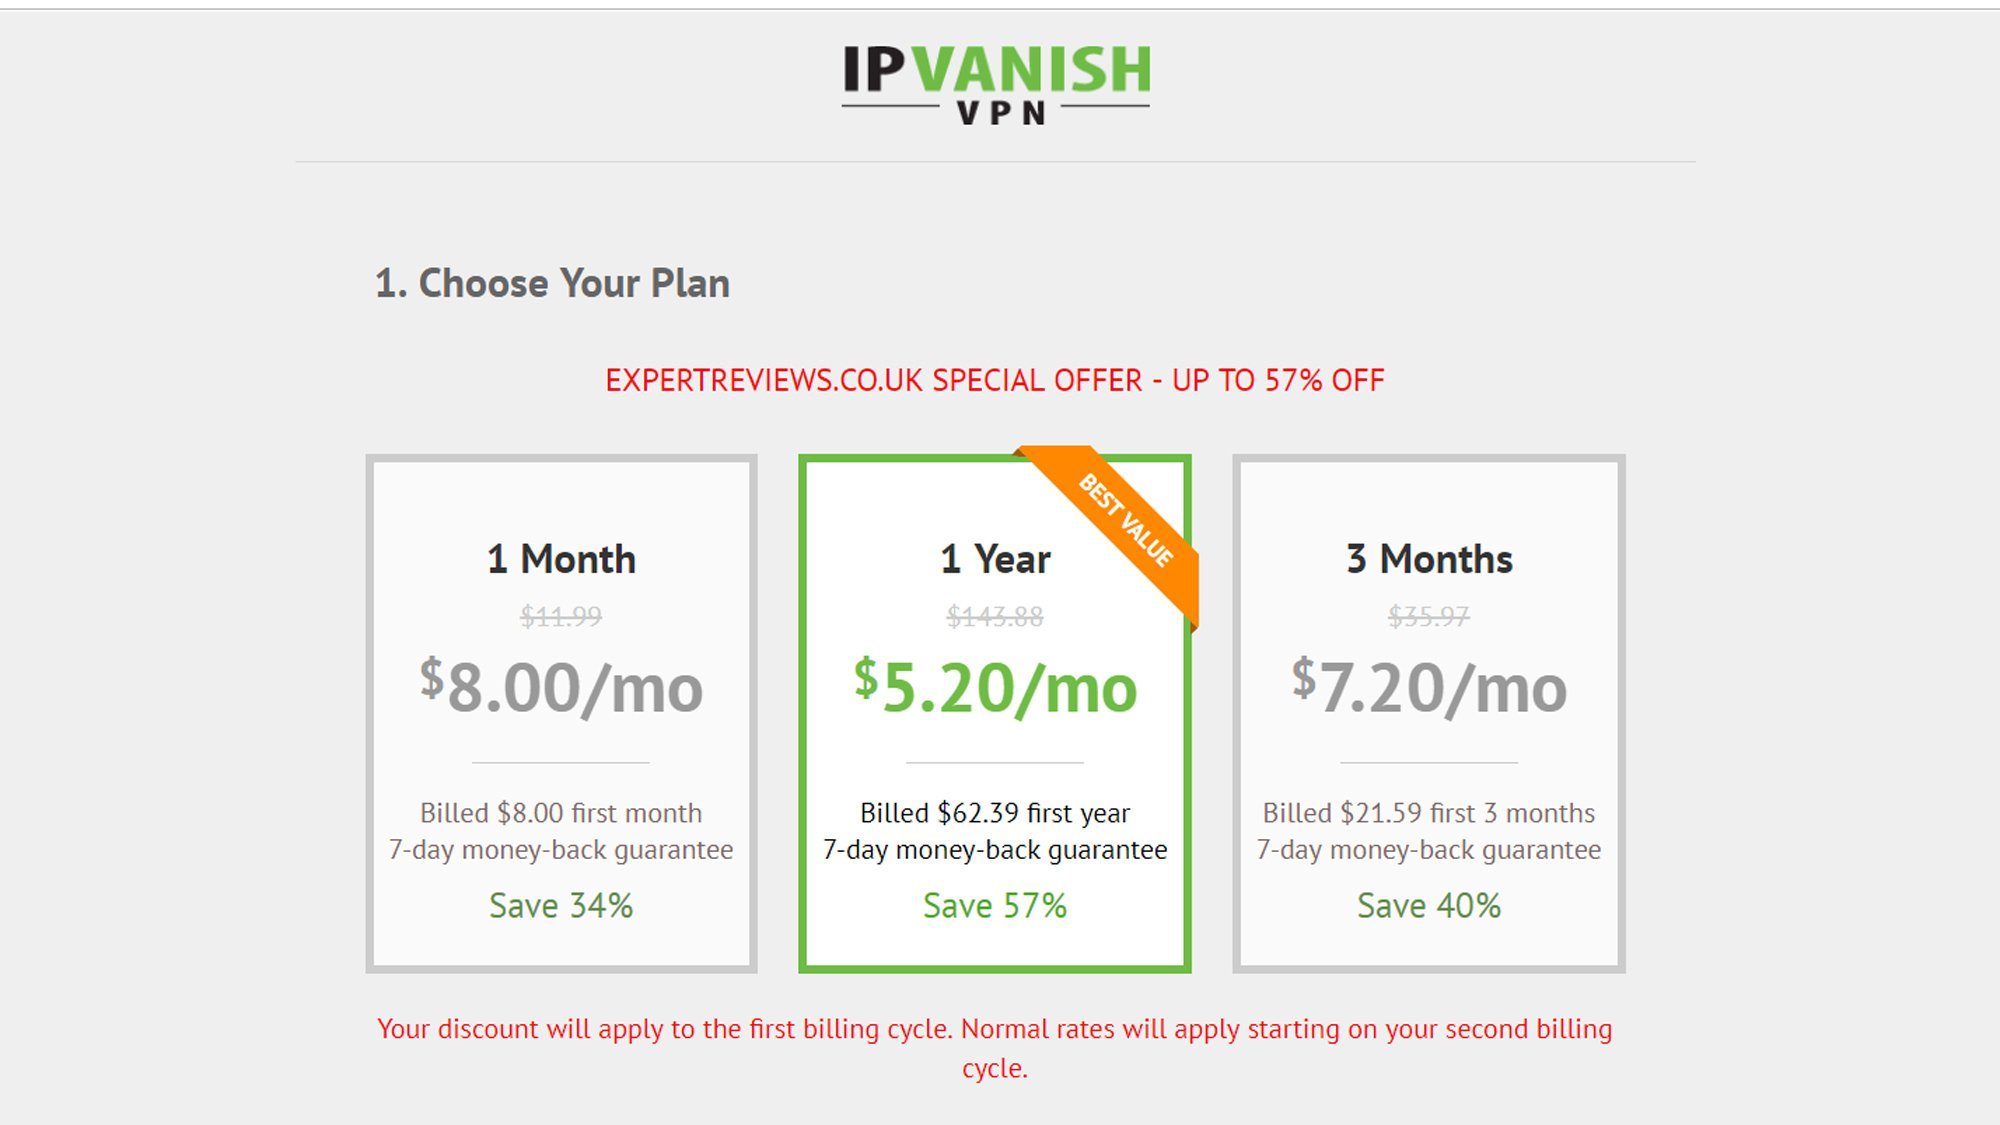 How Much Is It VPN Ip Vanish